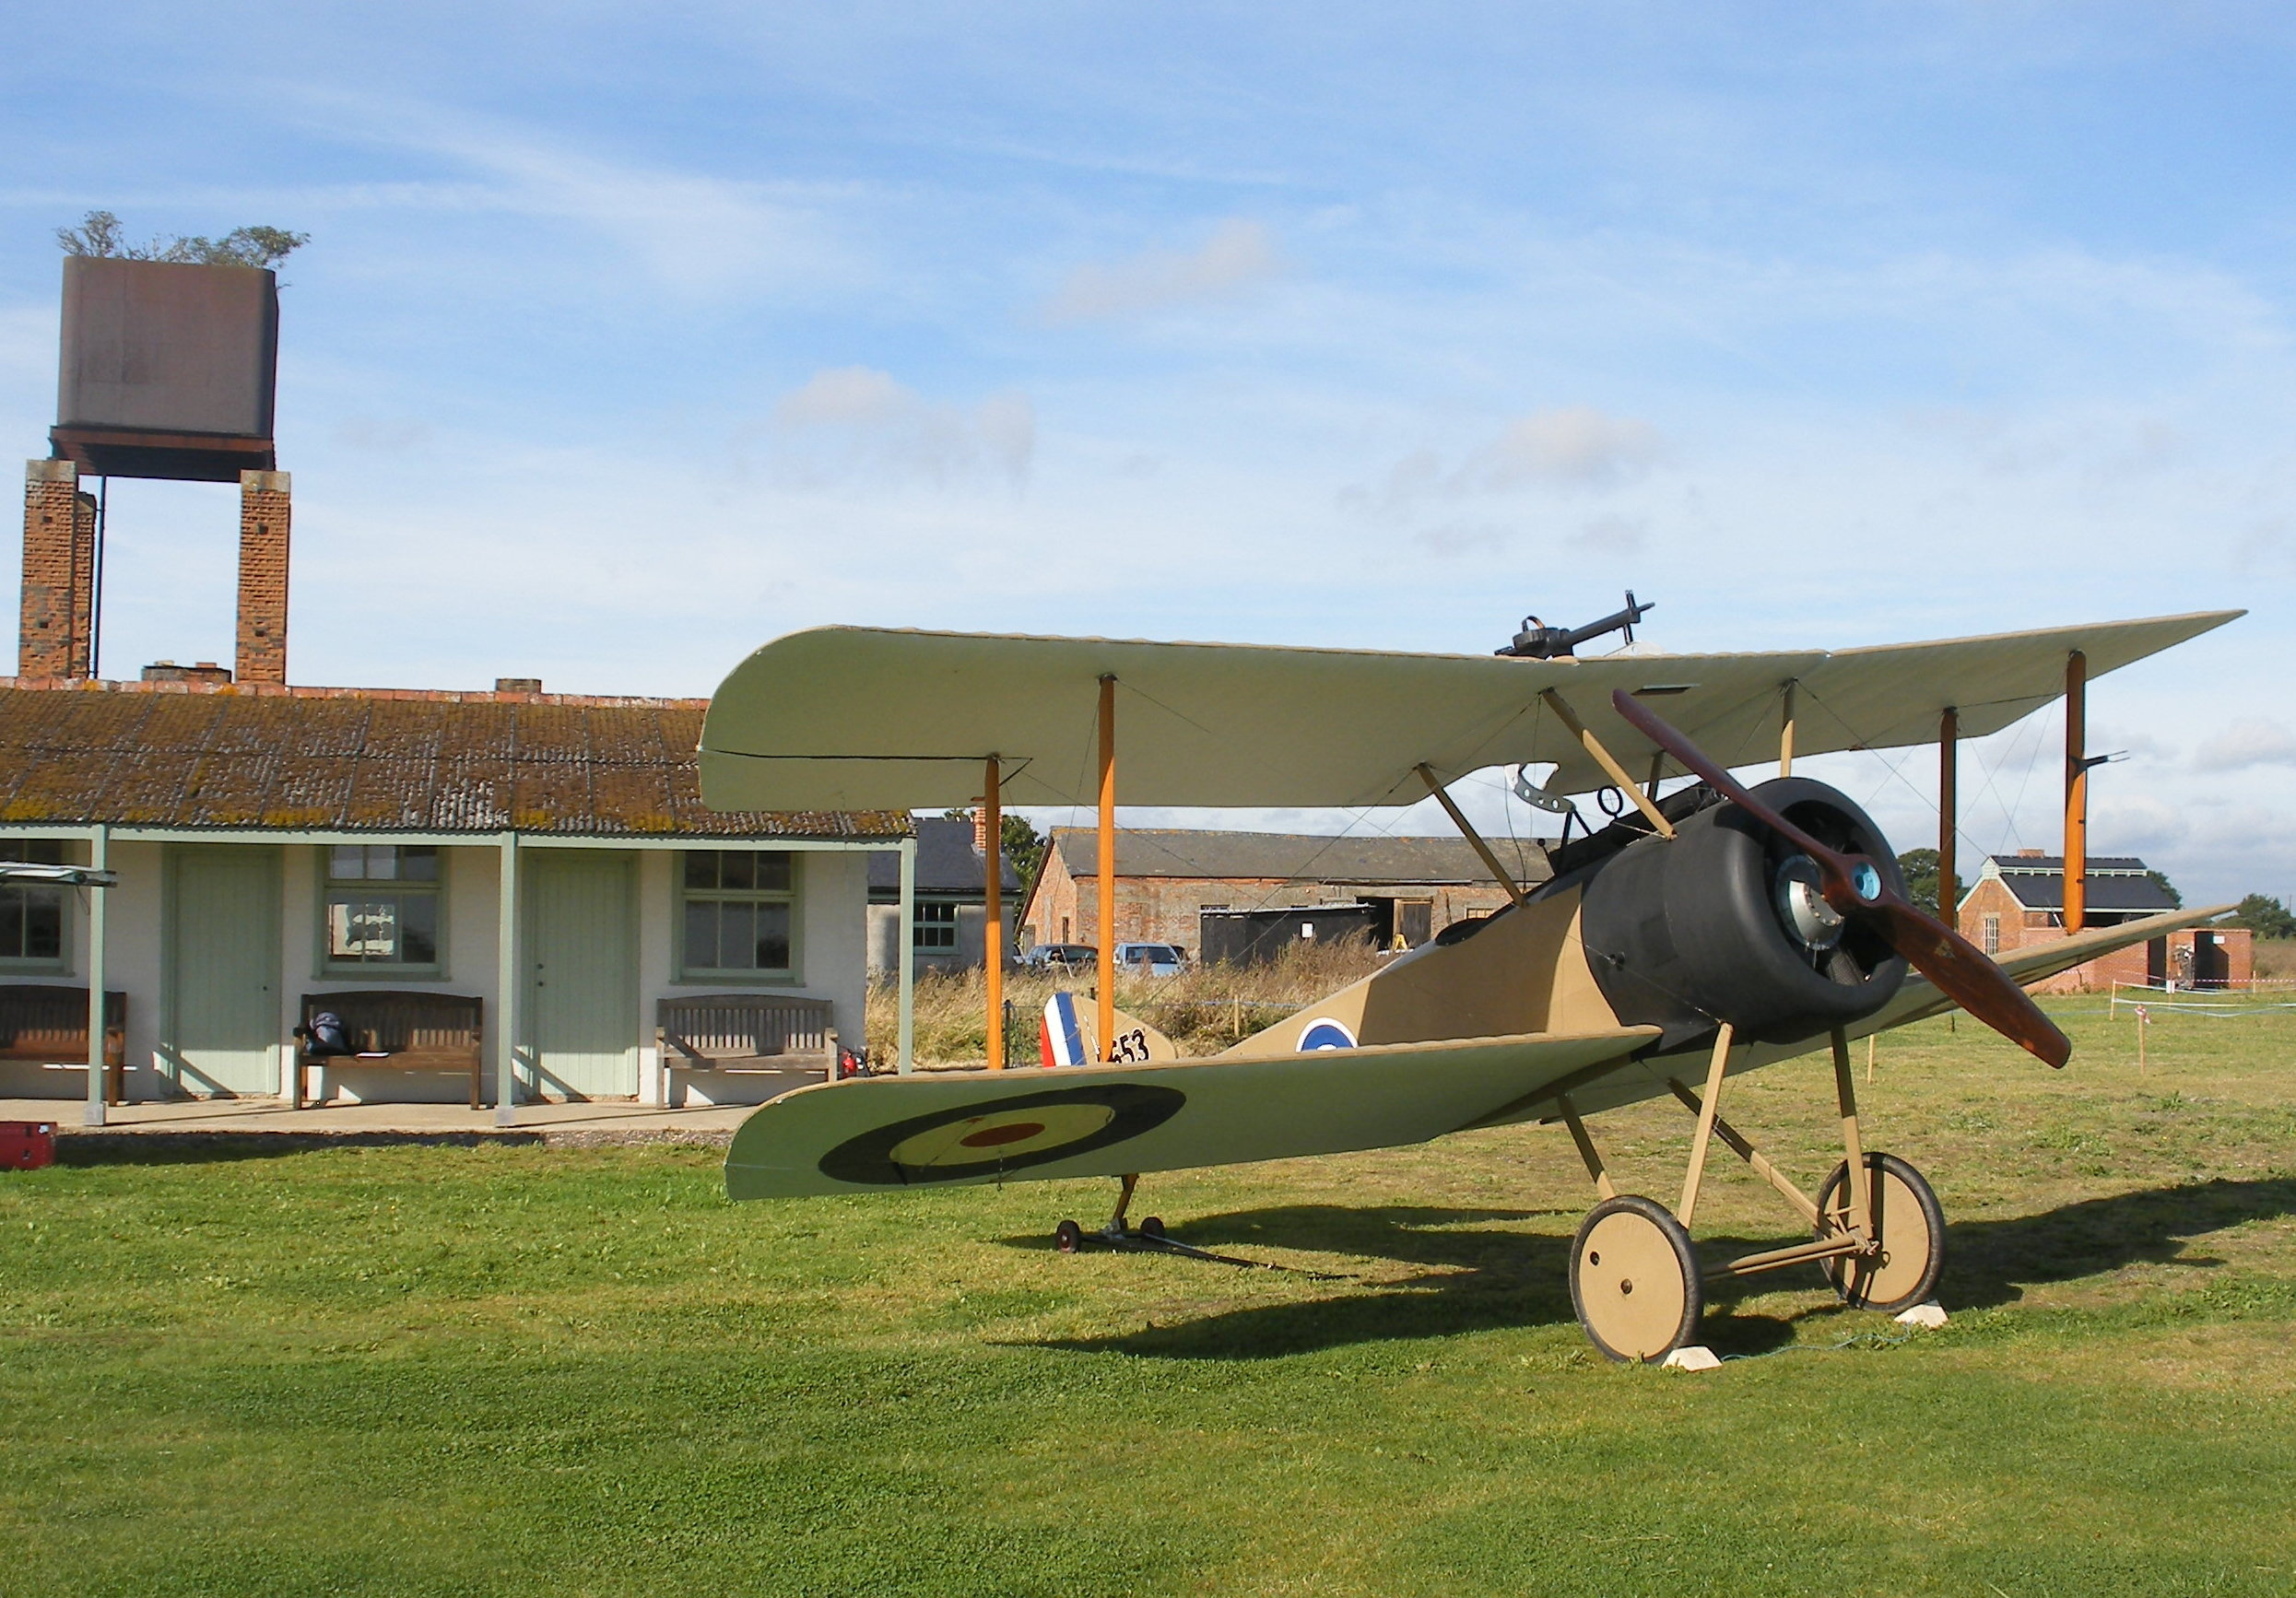 Stowe Maries Aerdrome